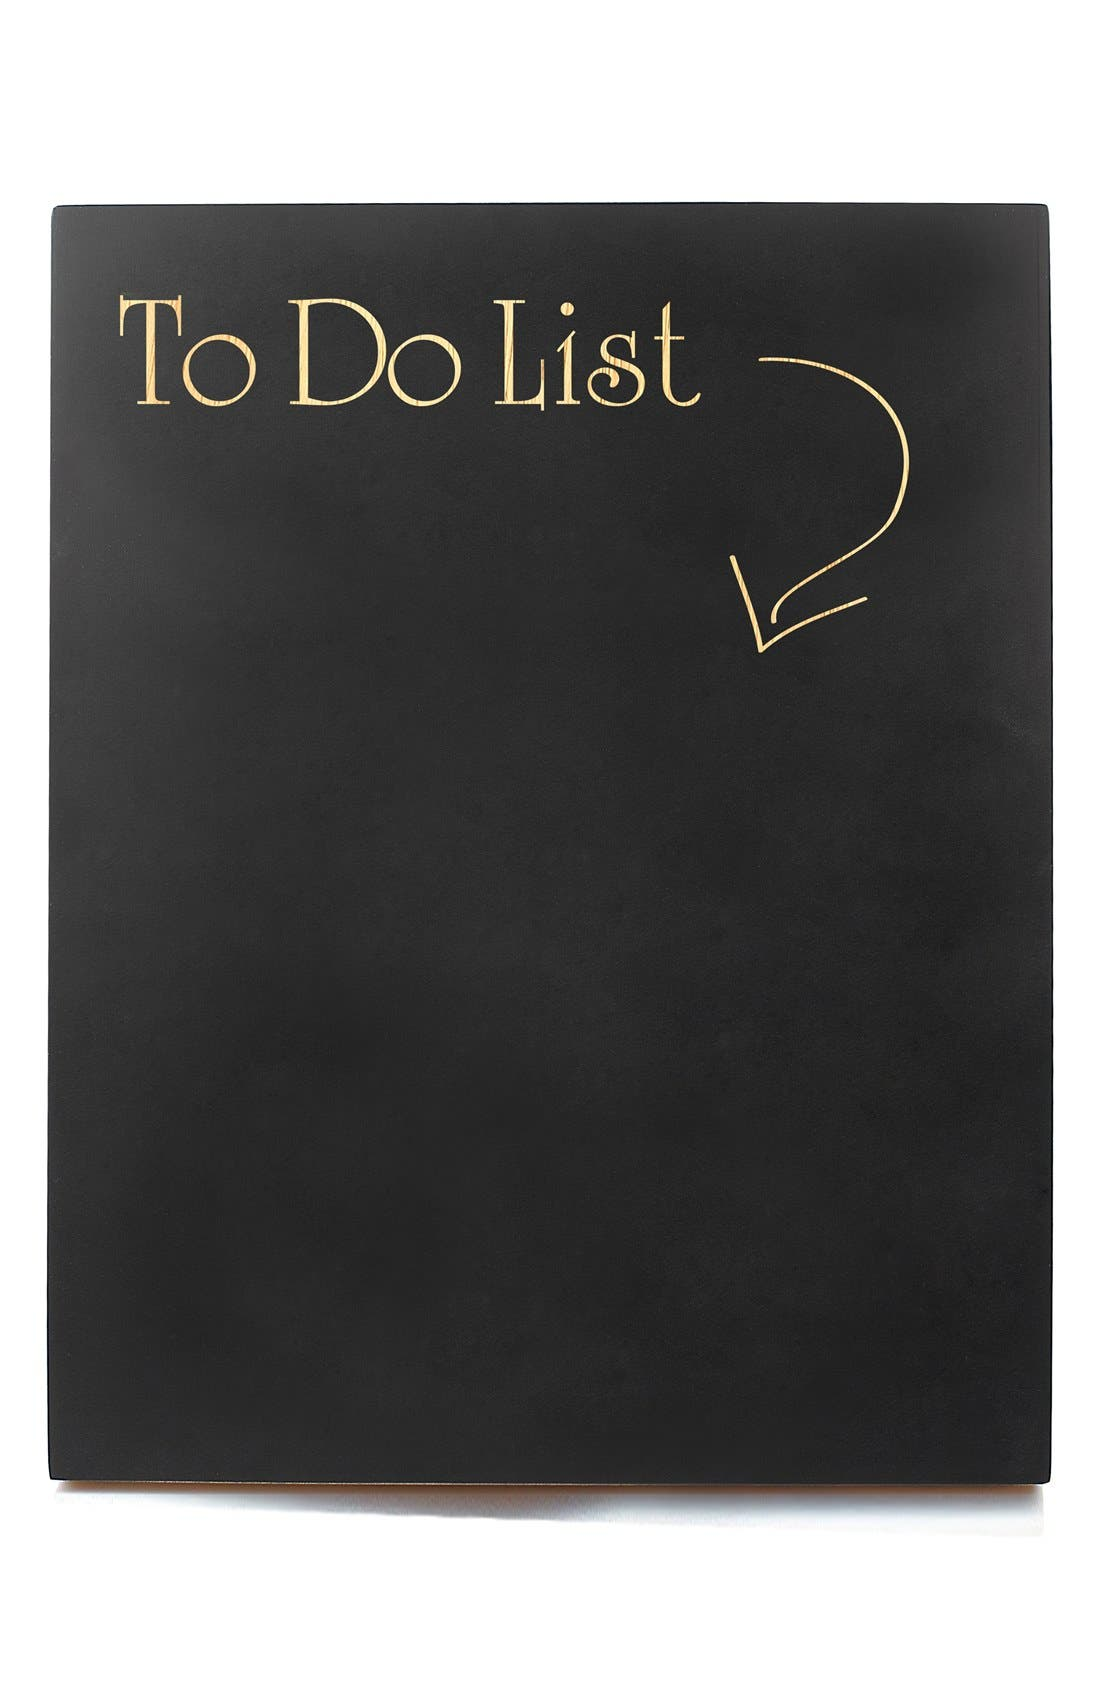 Alternate Image 1 Selected - Cathy's Concepts 'To Do List' Chalkboard Sign